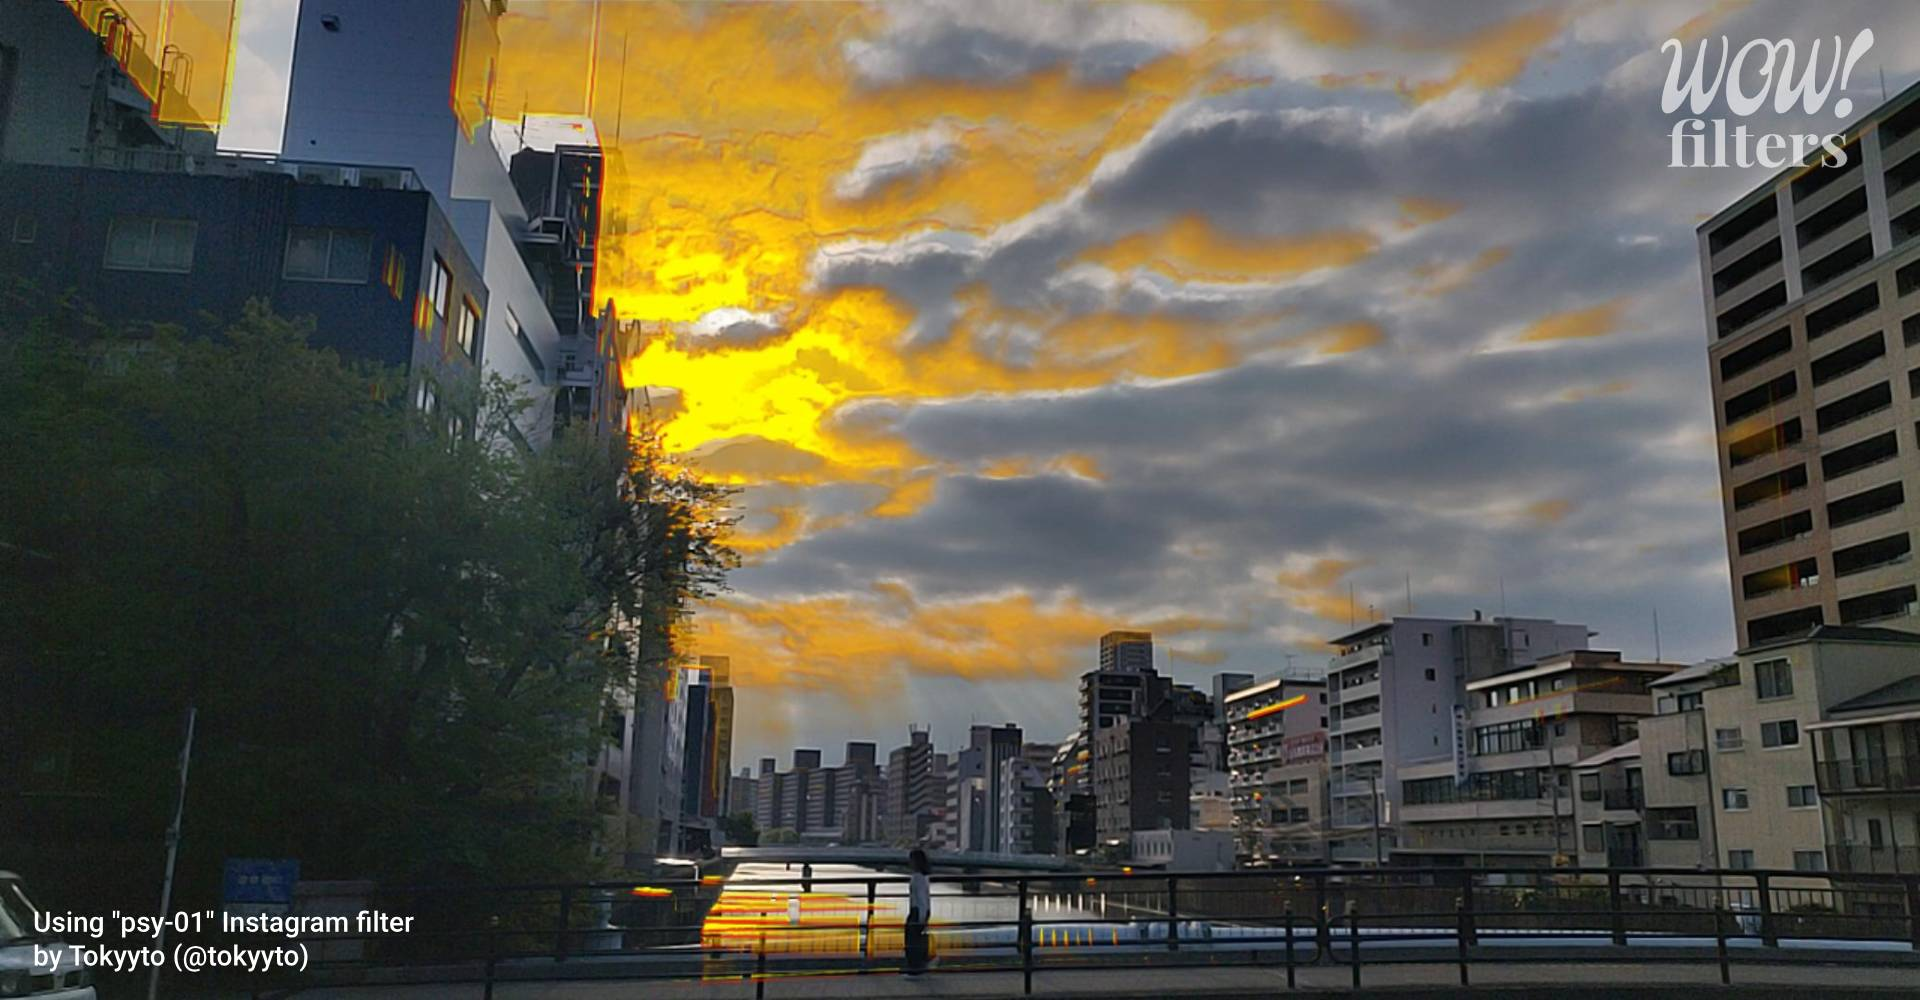 psy-01 Instagram camera effect with yellow colored sky